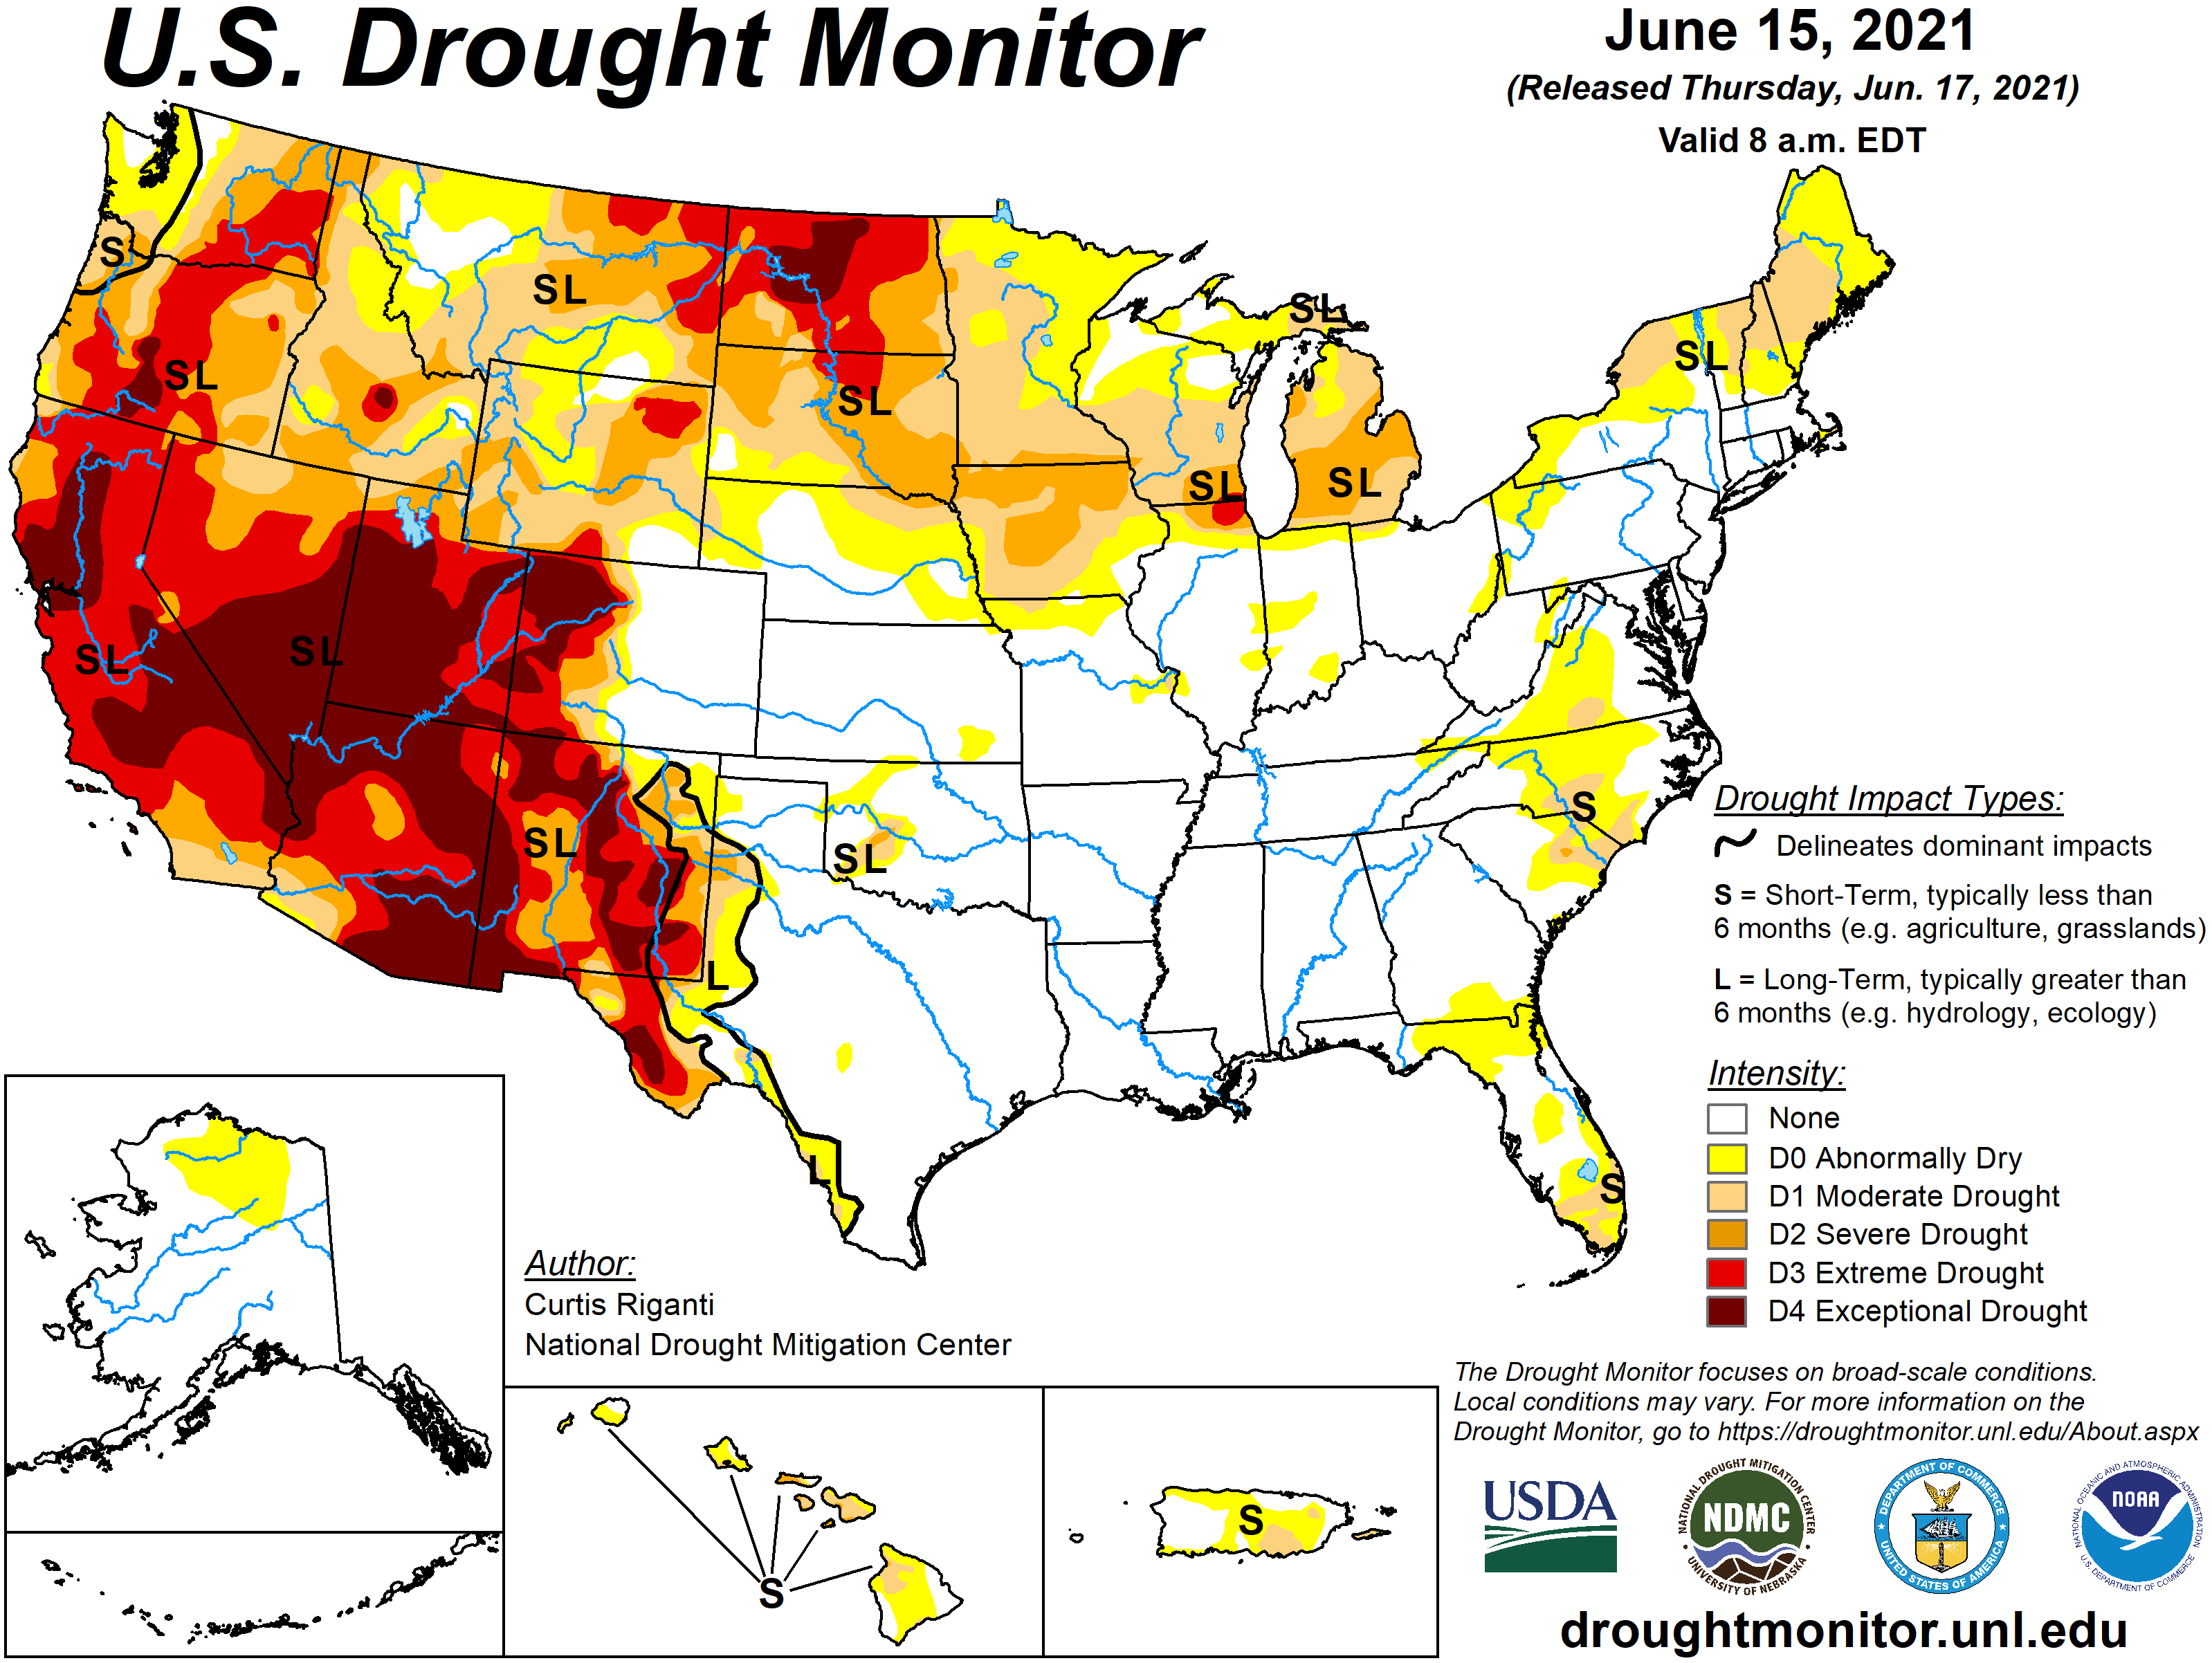 MAP United States drought conditions for June 15, 2021 - National Drought Mitigation Center